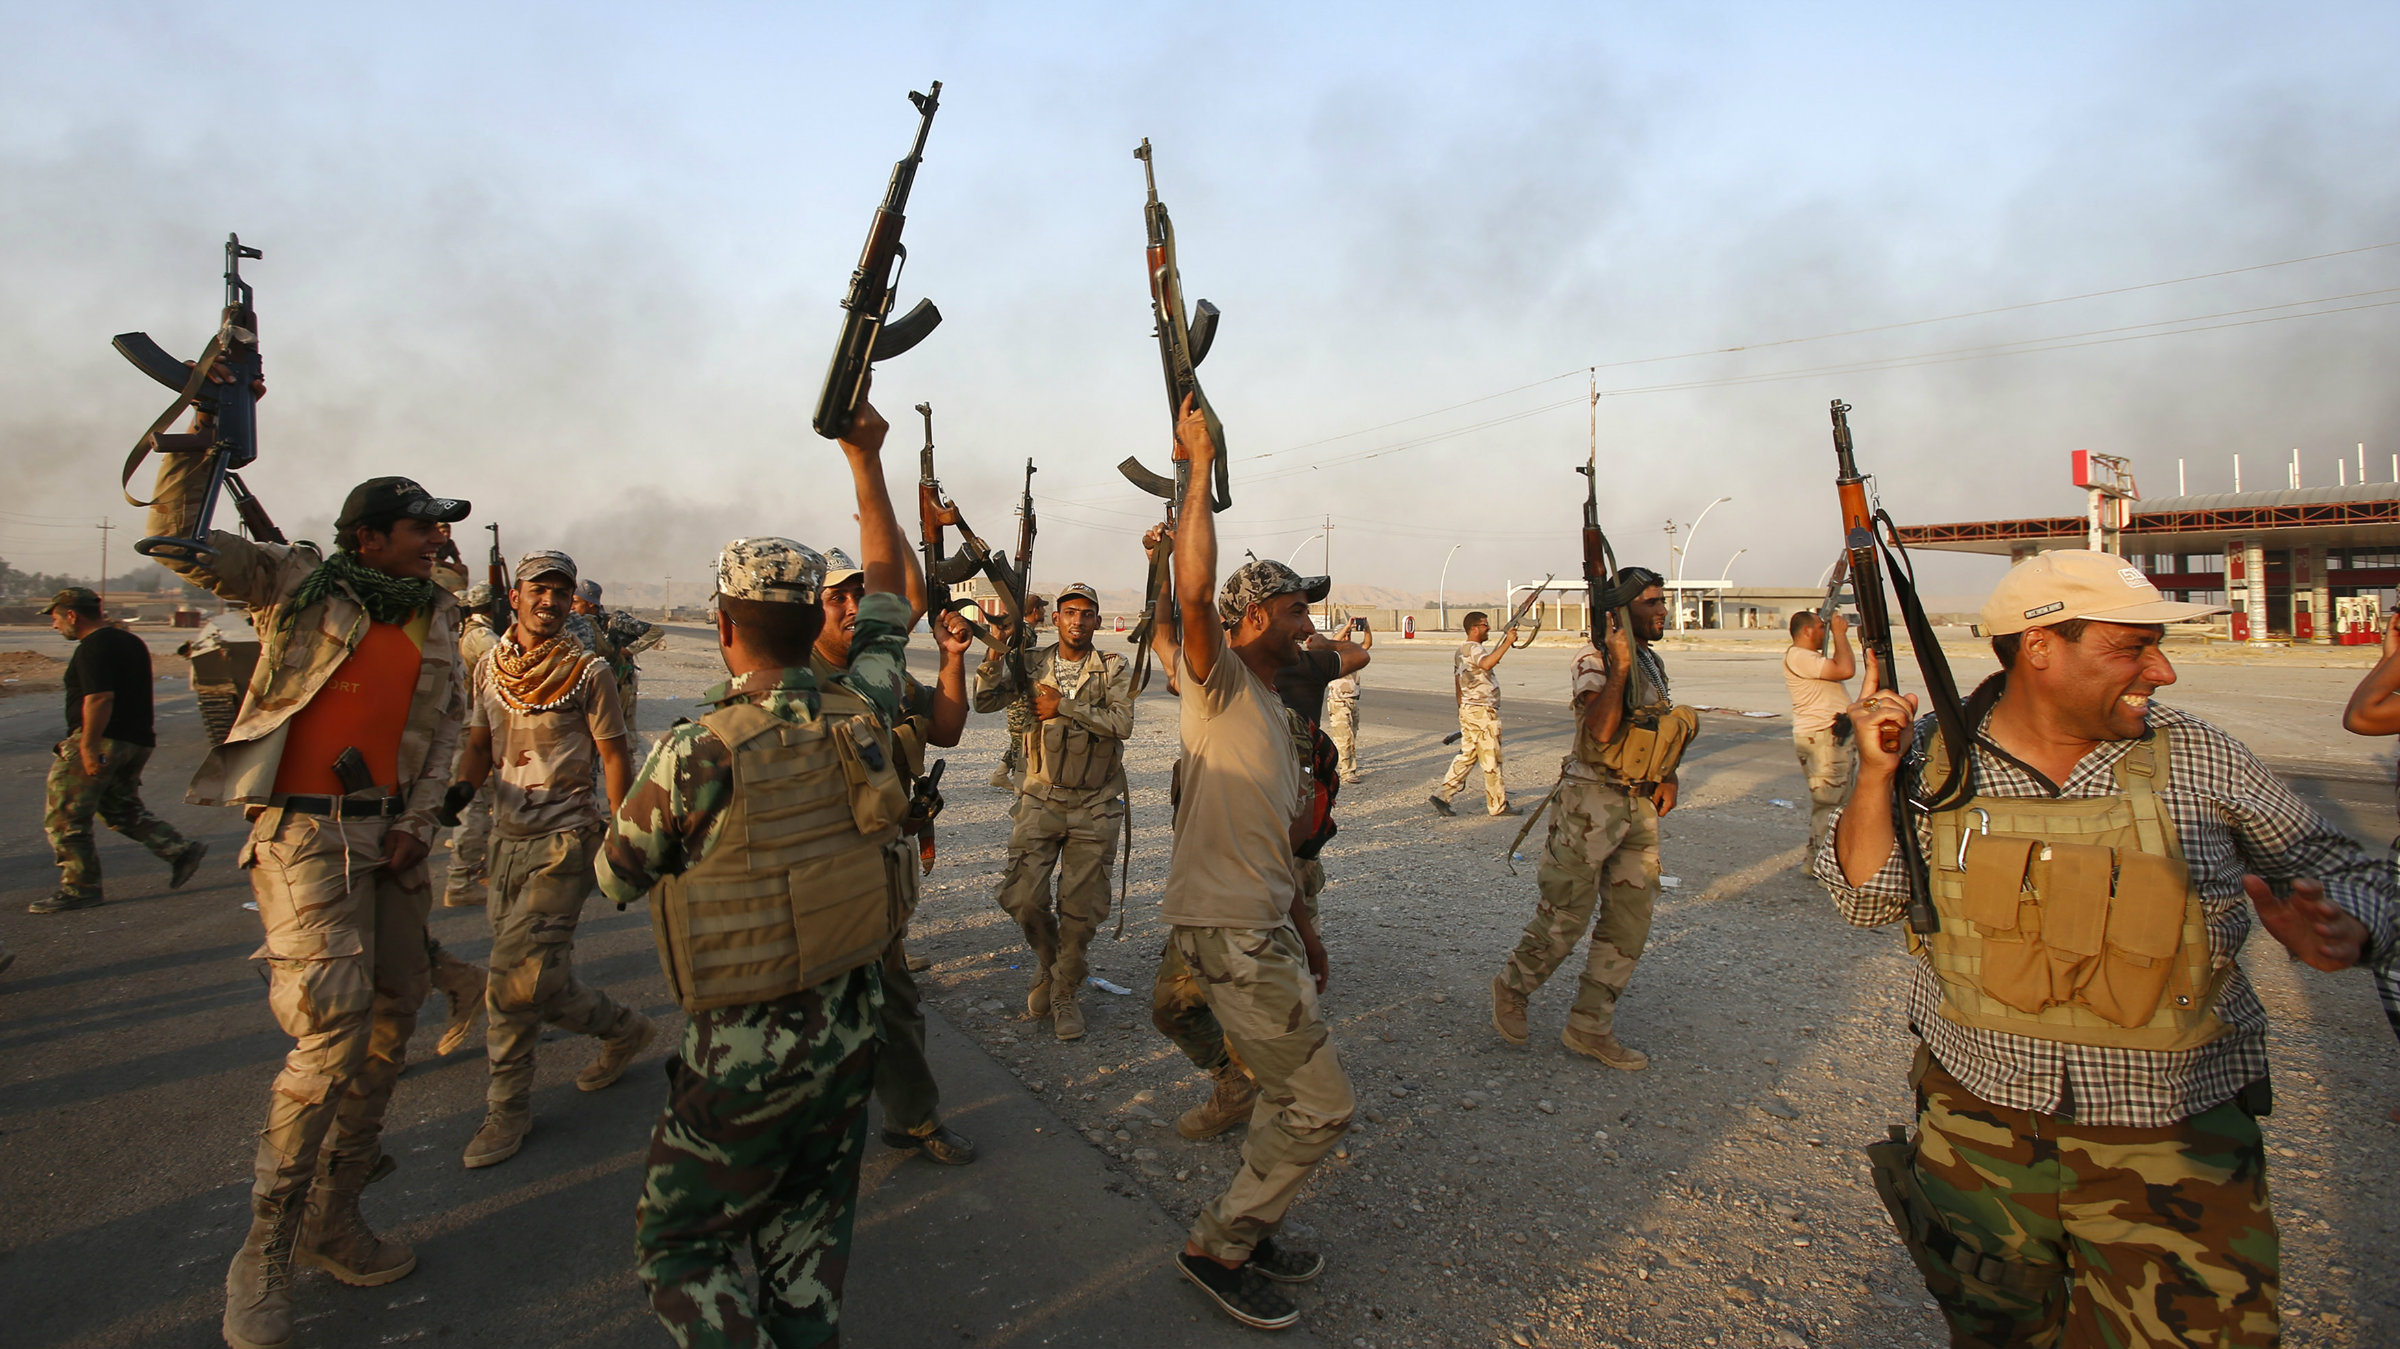 Iraqi Shiite militia fighters fire their weapons as they celebrate breaking a long siege of Amerli by Islamic State militants, September 1, 2014. REUTERS/Youssef Boudlal (